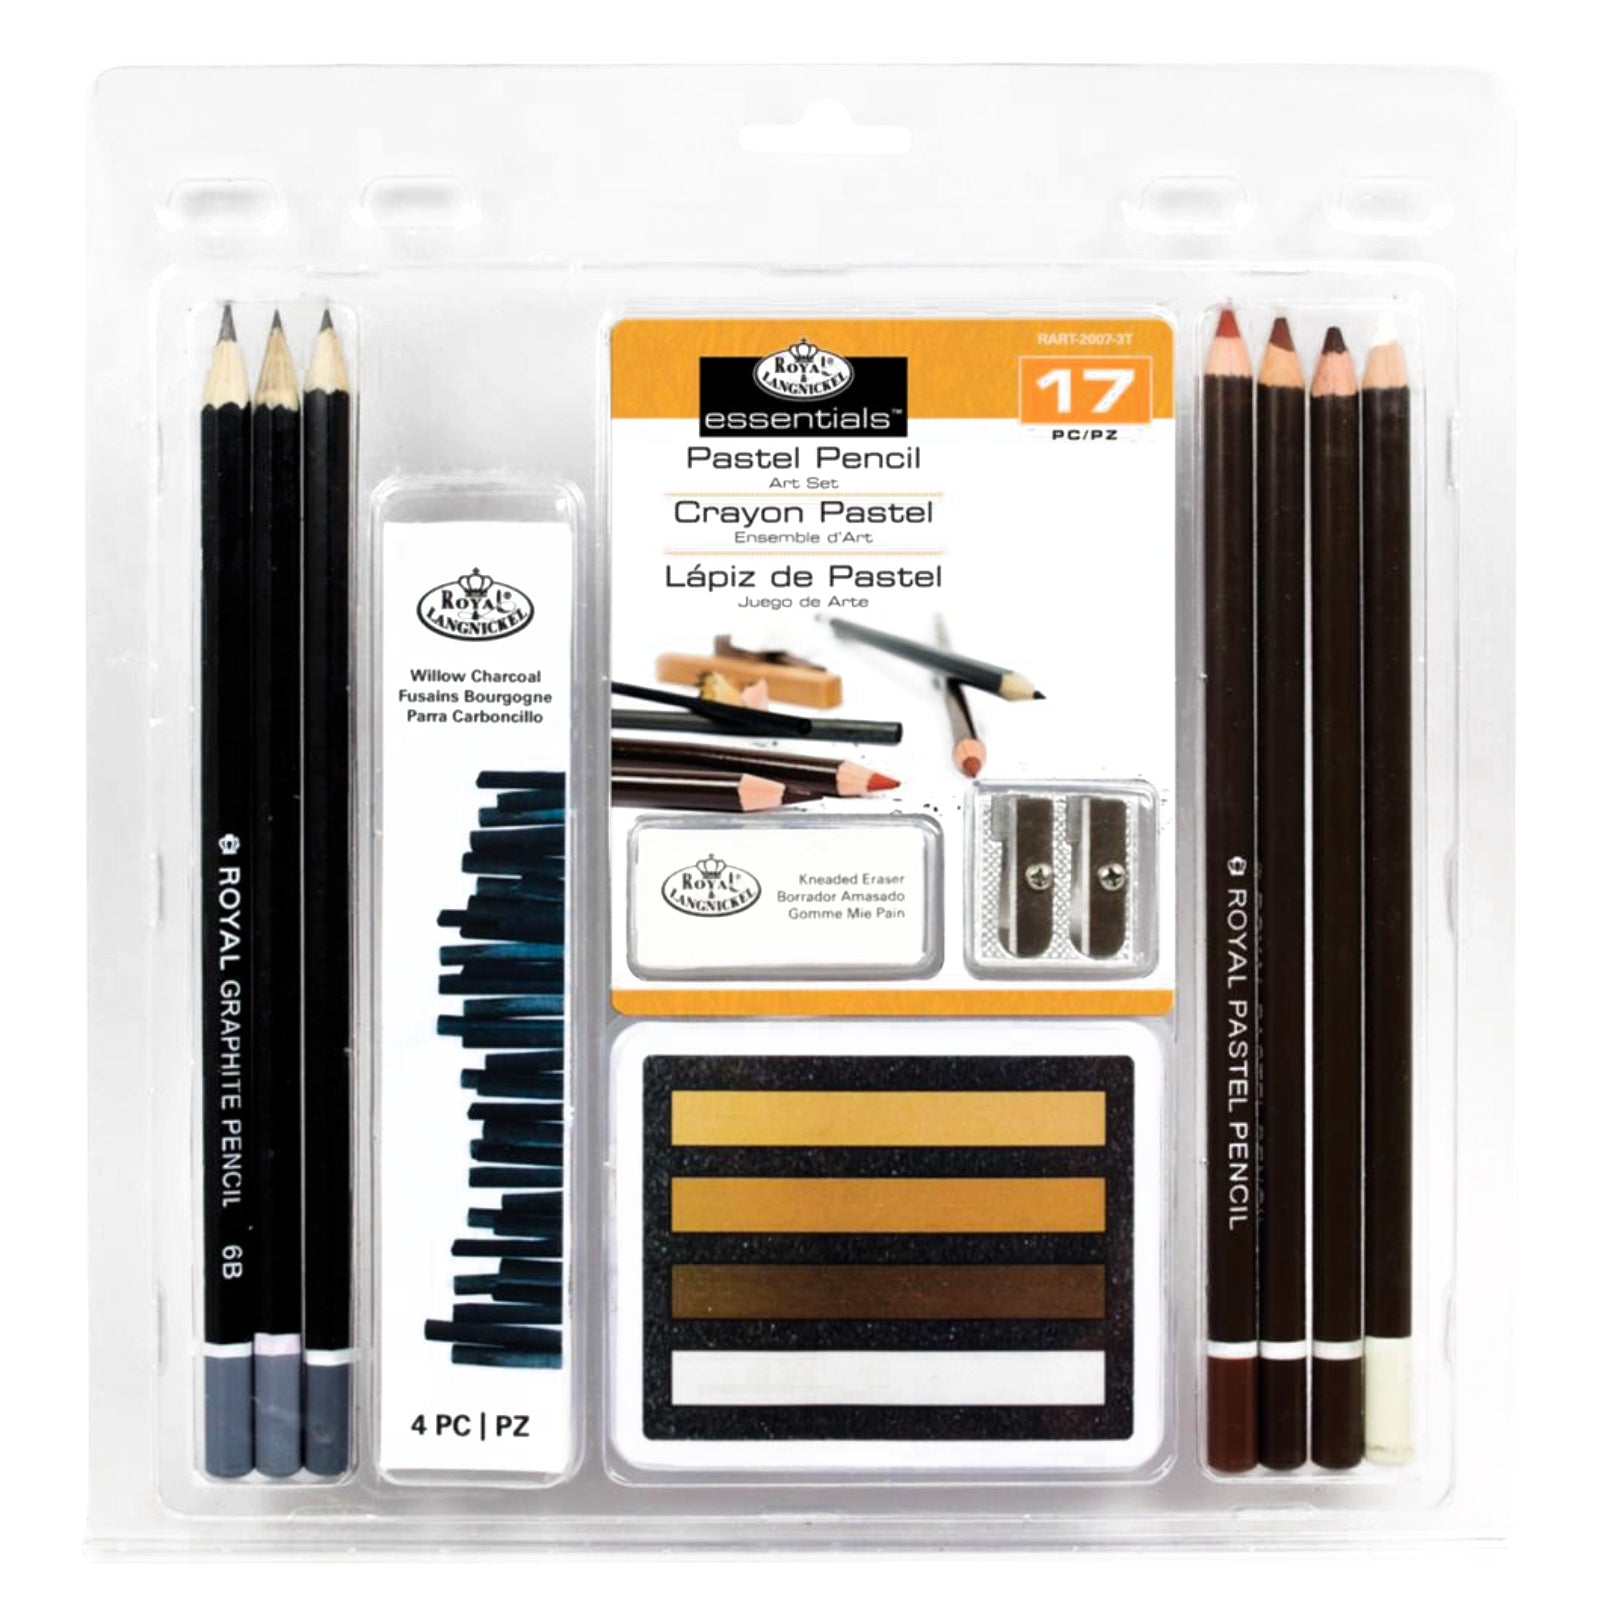 Pastel Pencil 17pc / Kit de Pasteles para Dibujo y Pintura